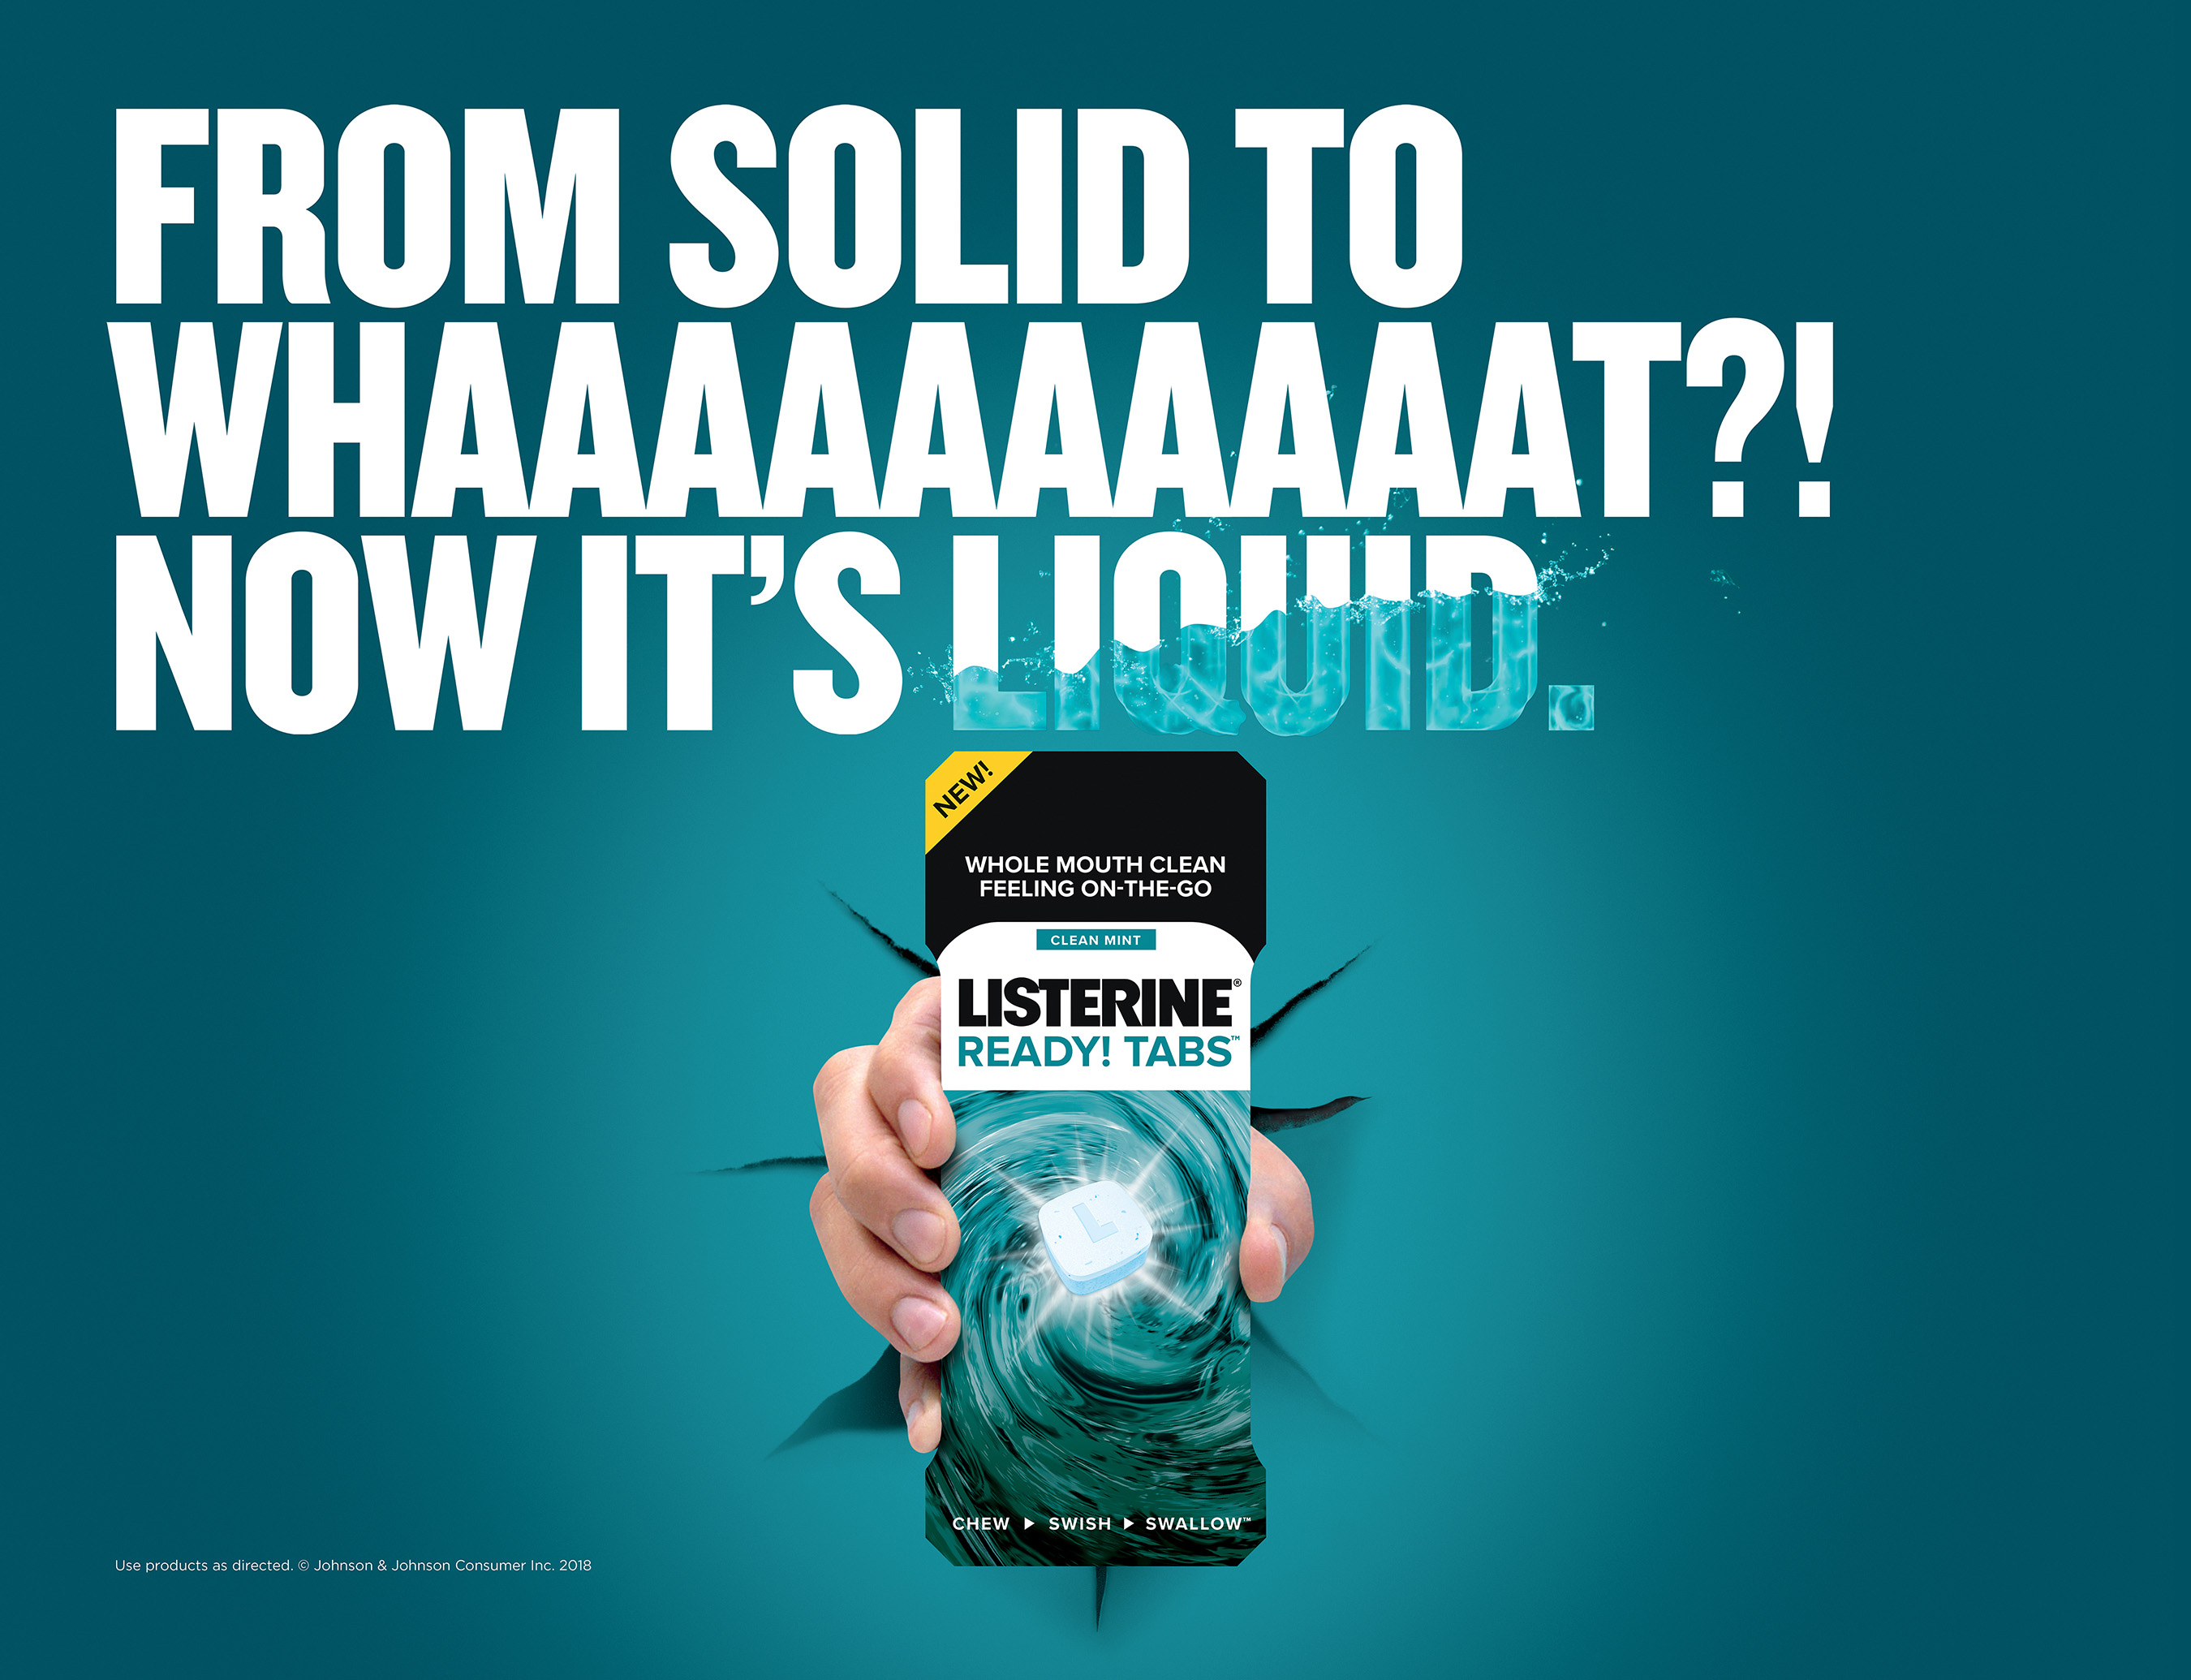 Introducing the NEW LISTERINE® READY! TABS™